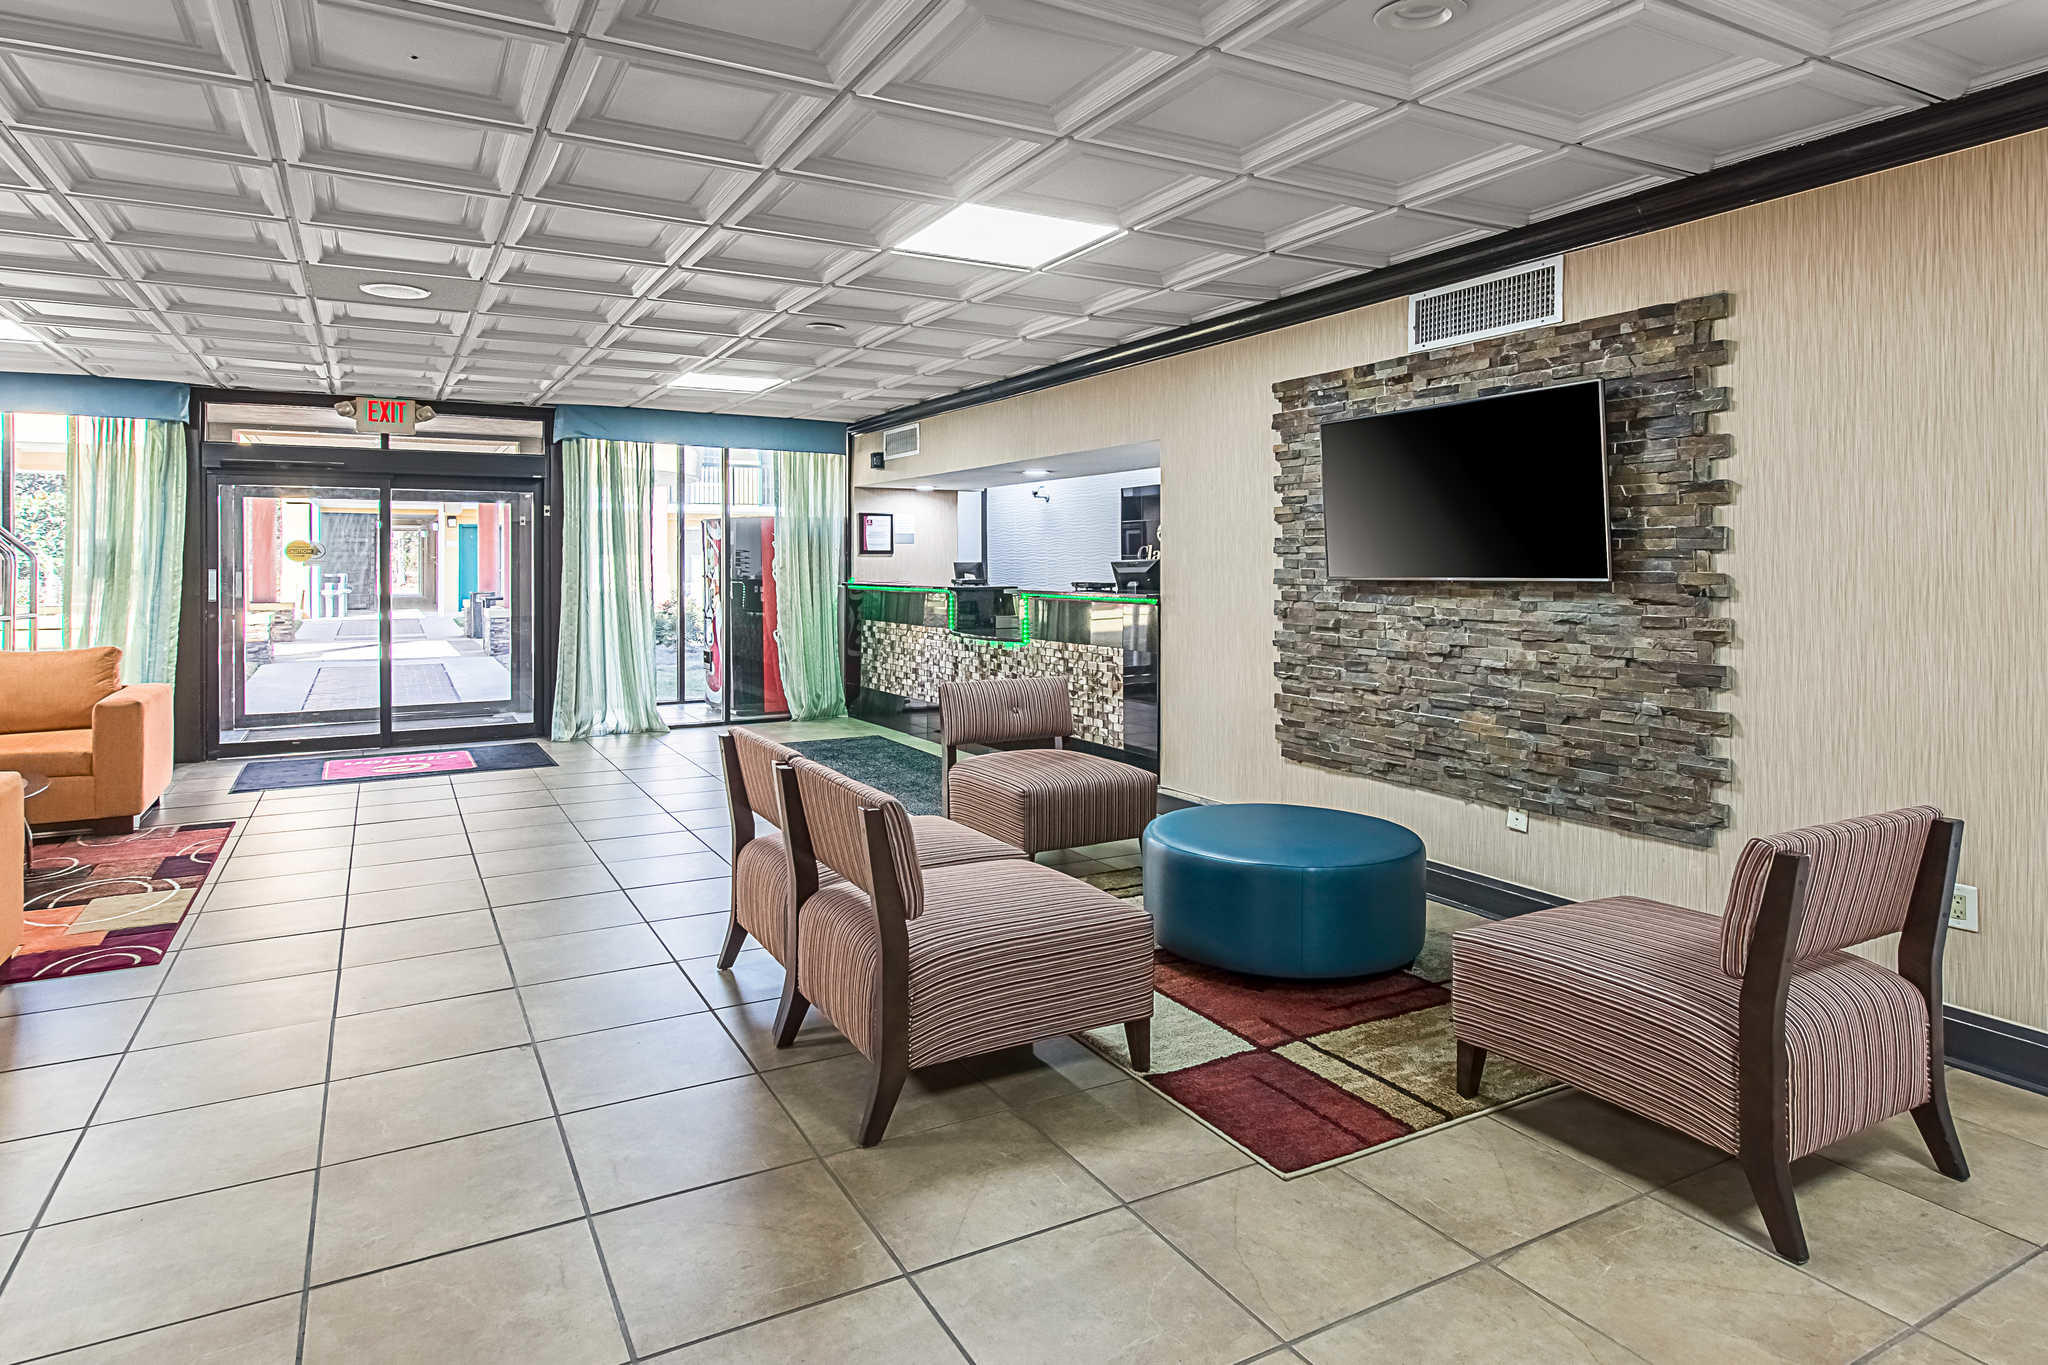 Clarion Inn Airport image 6